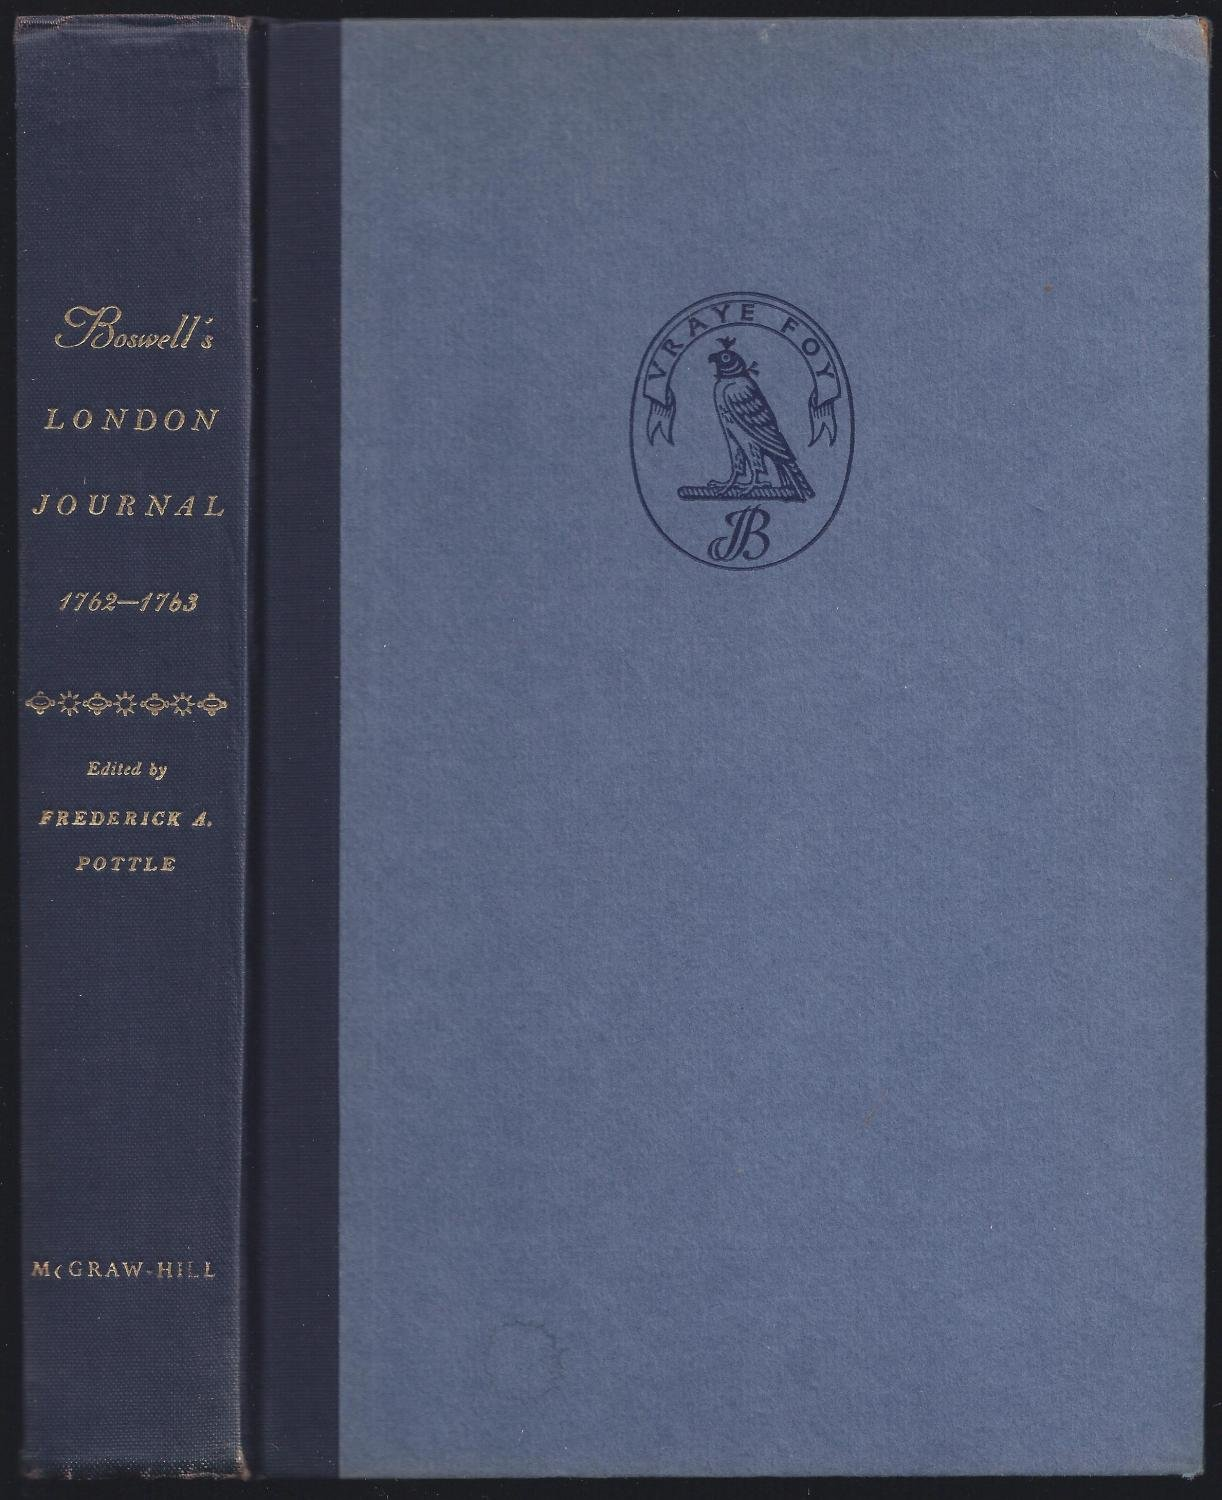 Boswell's London journal, 1762-1763 (Yale editions of the private papers of  James Boswell series): Amazon.co.uk: James Boswell: 9780712662055: Books